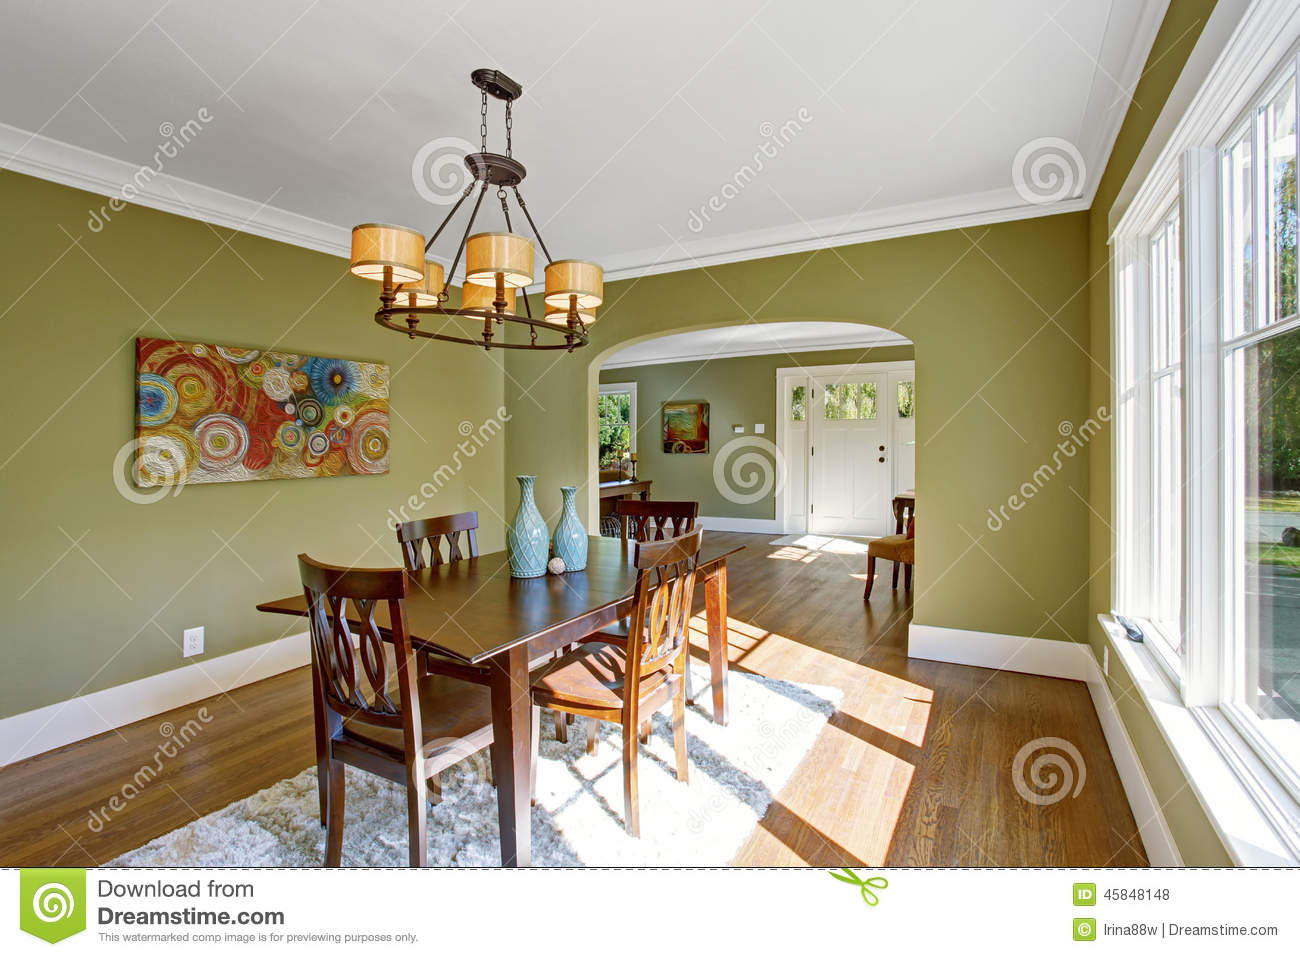 Dining Room With Olive Tone Walls Stock Image